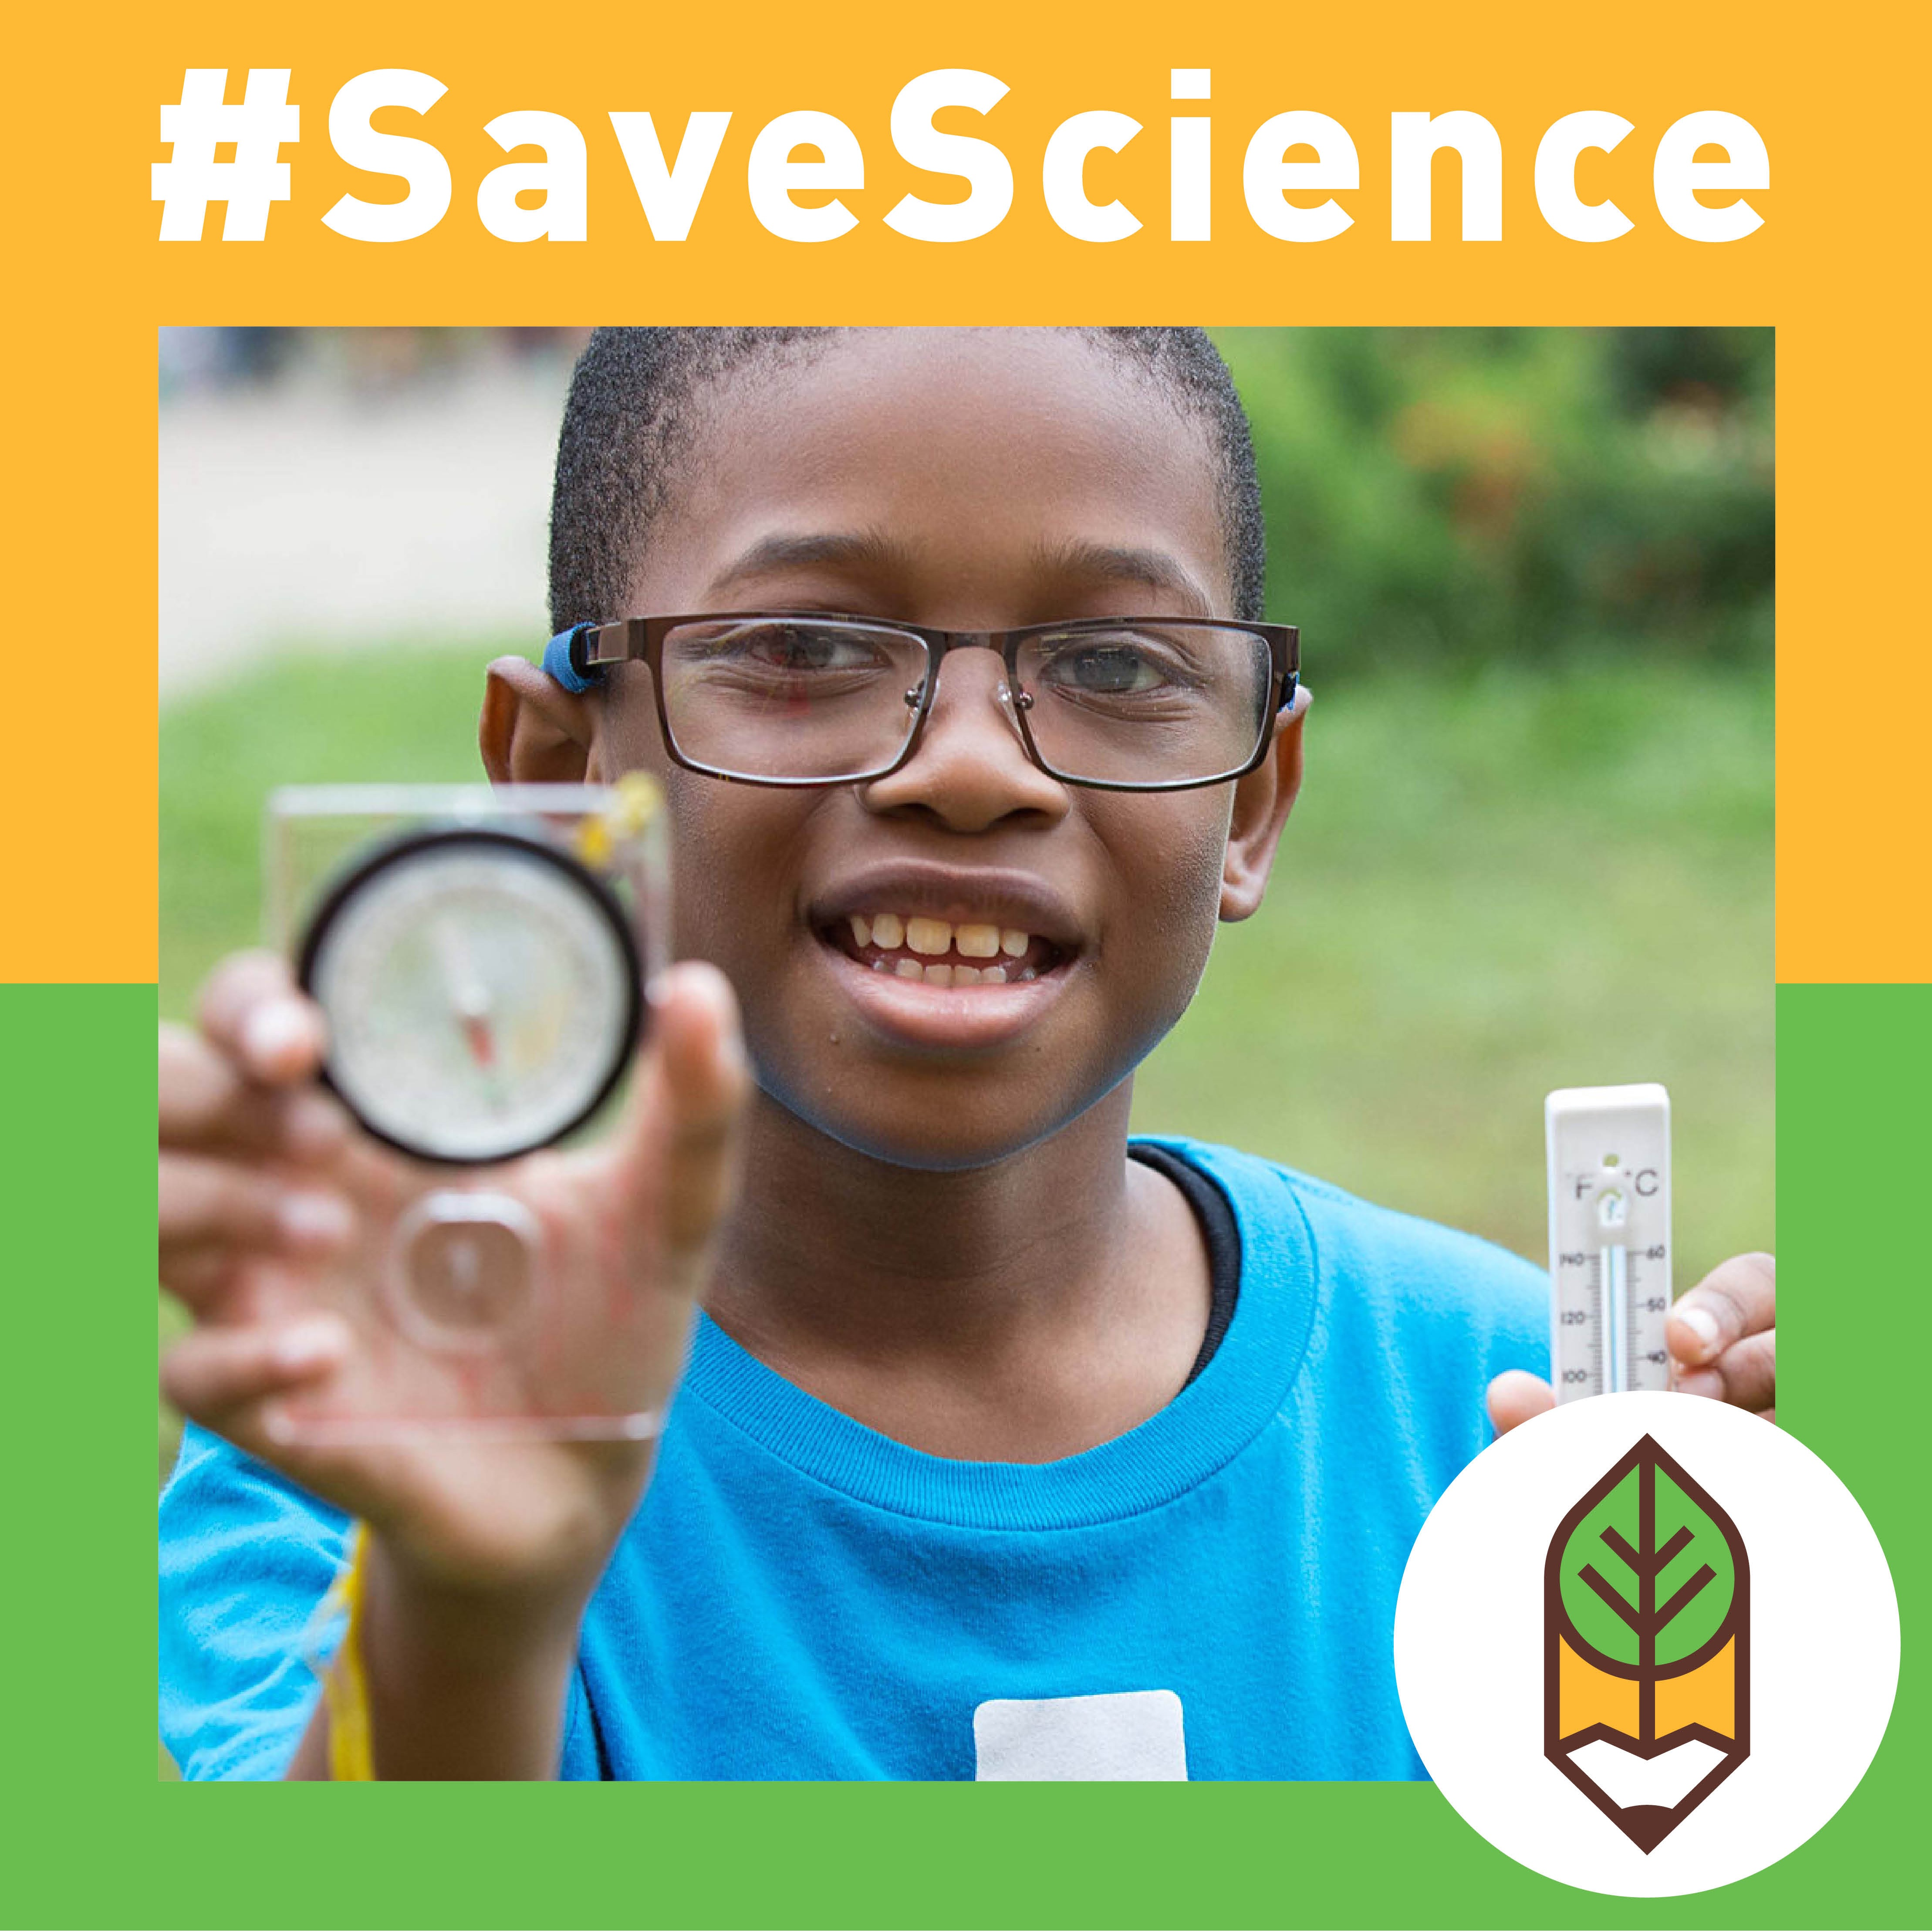 savescience_kids_26